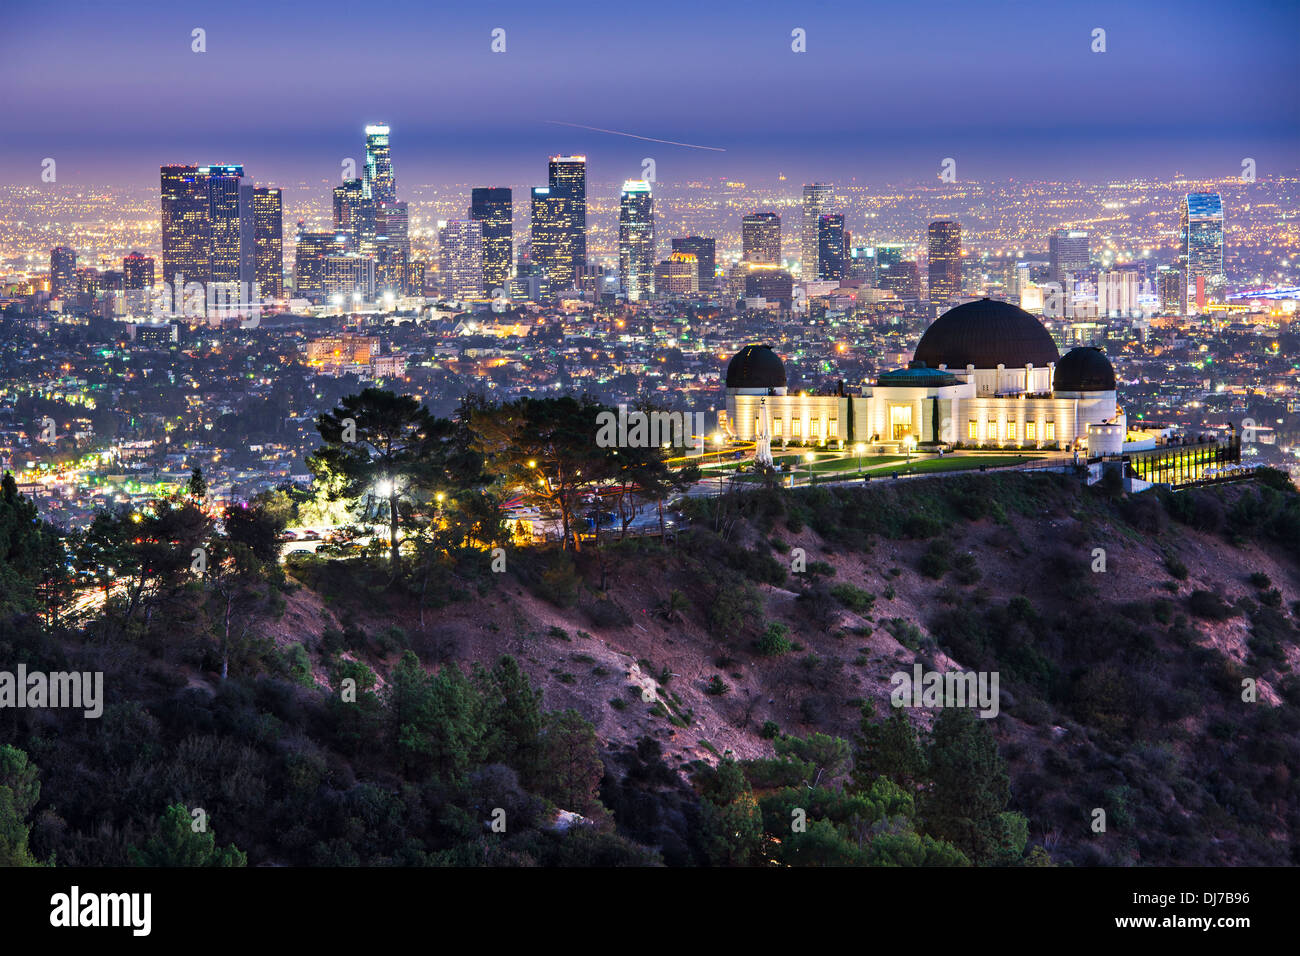 Griffith Obervatory and Downtown Los Angeles, California, USA skyline at dawn. - Stock Image